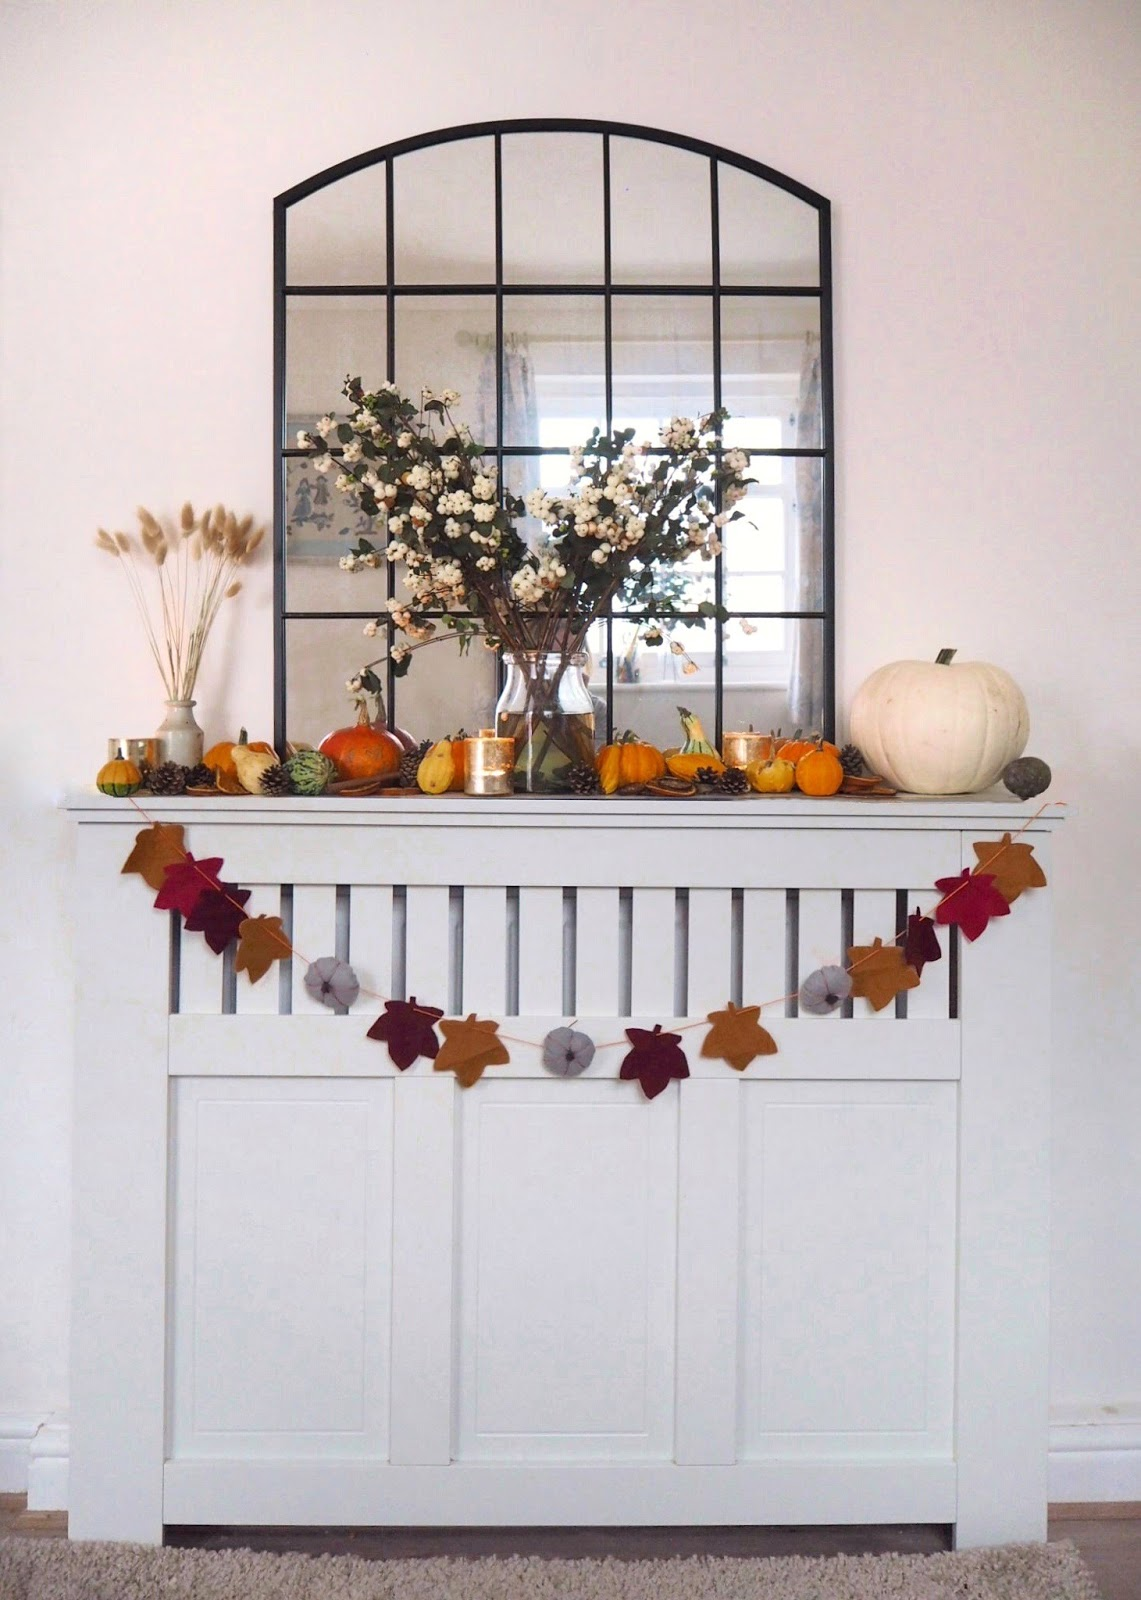 How to make a halloween garland from felt perfect for decorating your home over the Autumn Fall season. Featuring leaves and pumpkins made from felt, a simple crafting project you can complete quickly and cheaply.